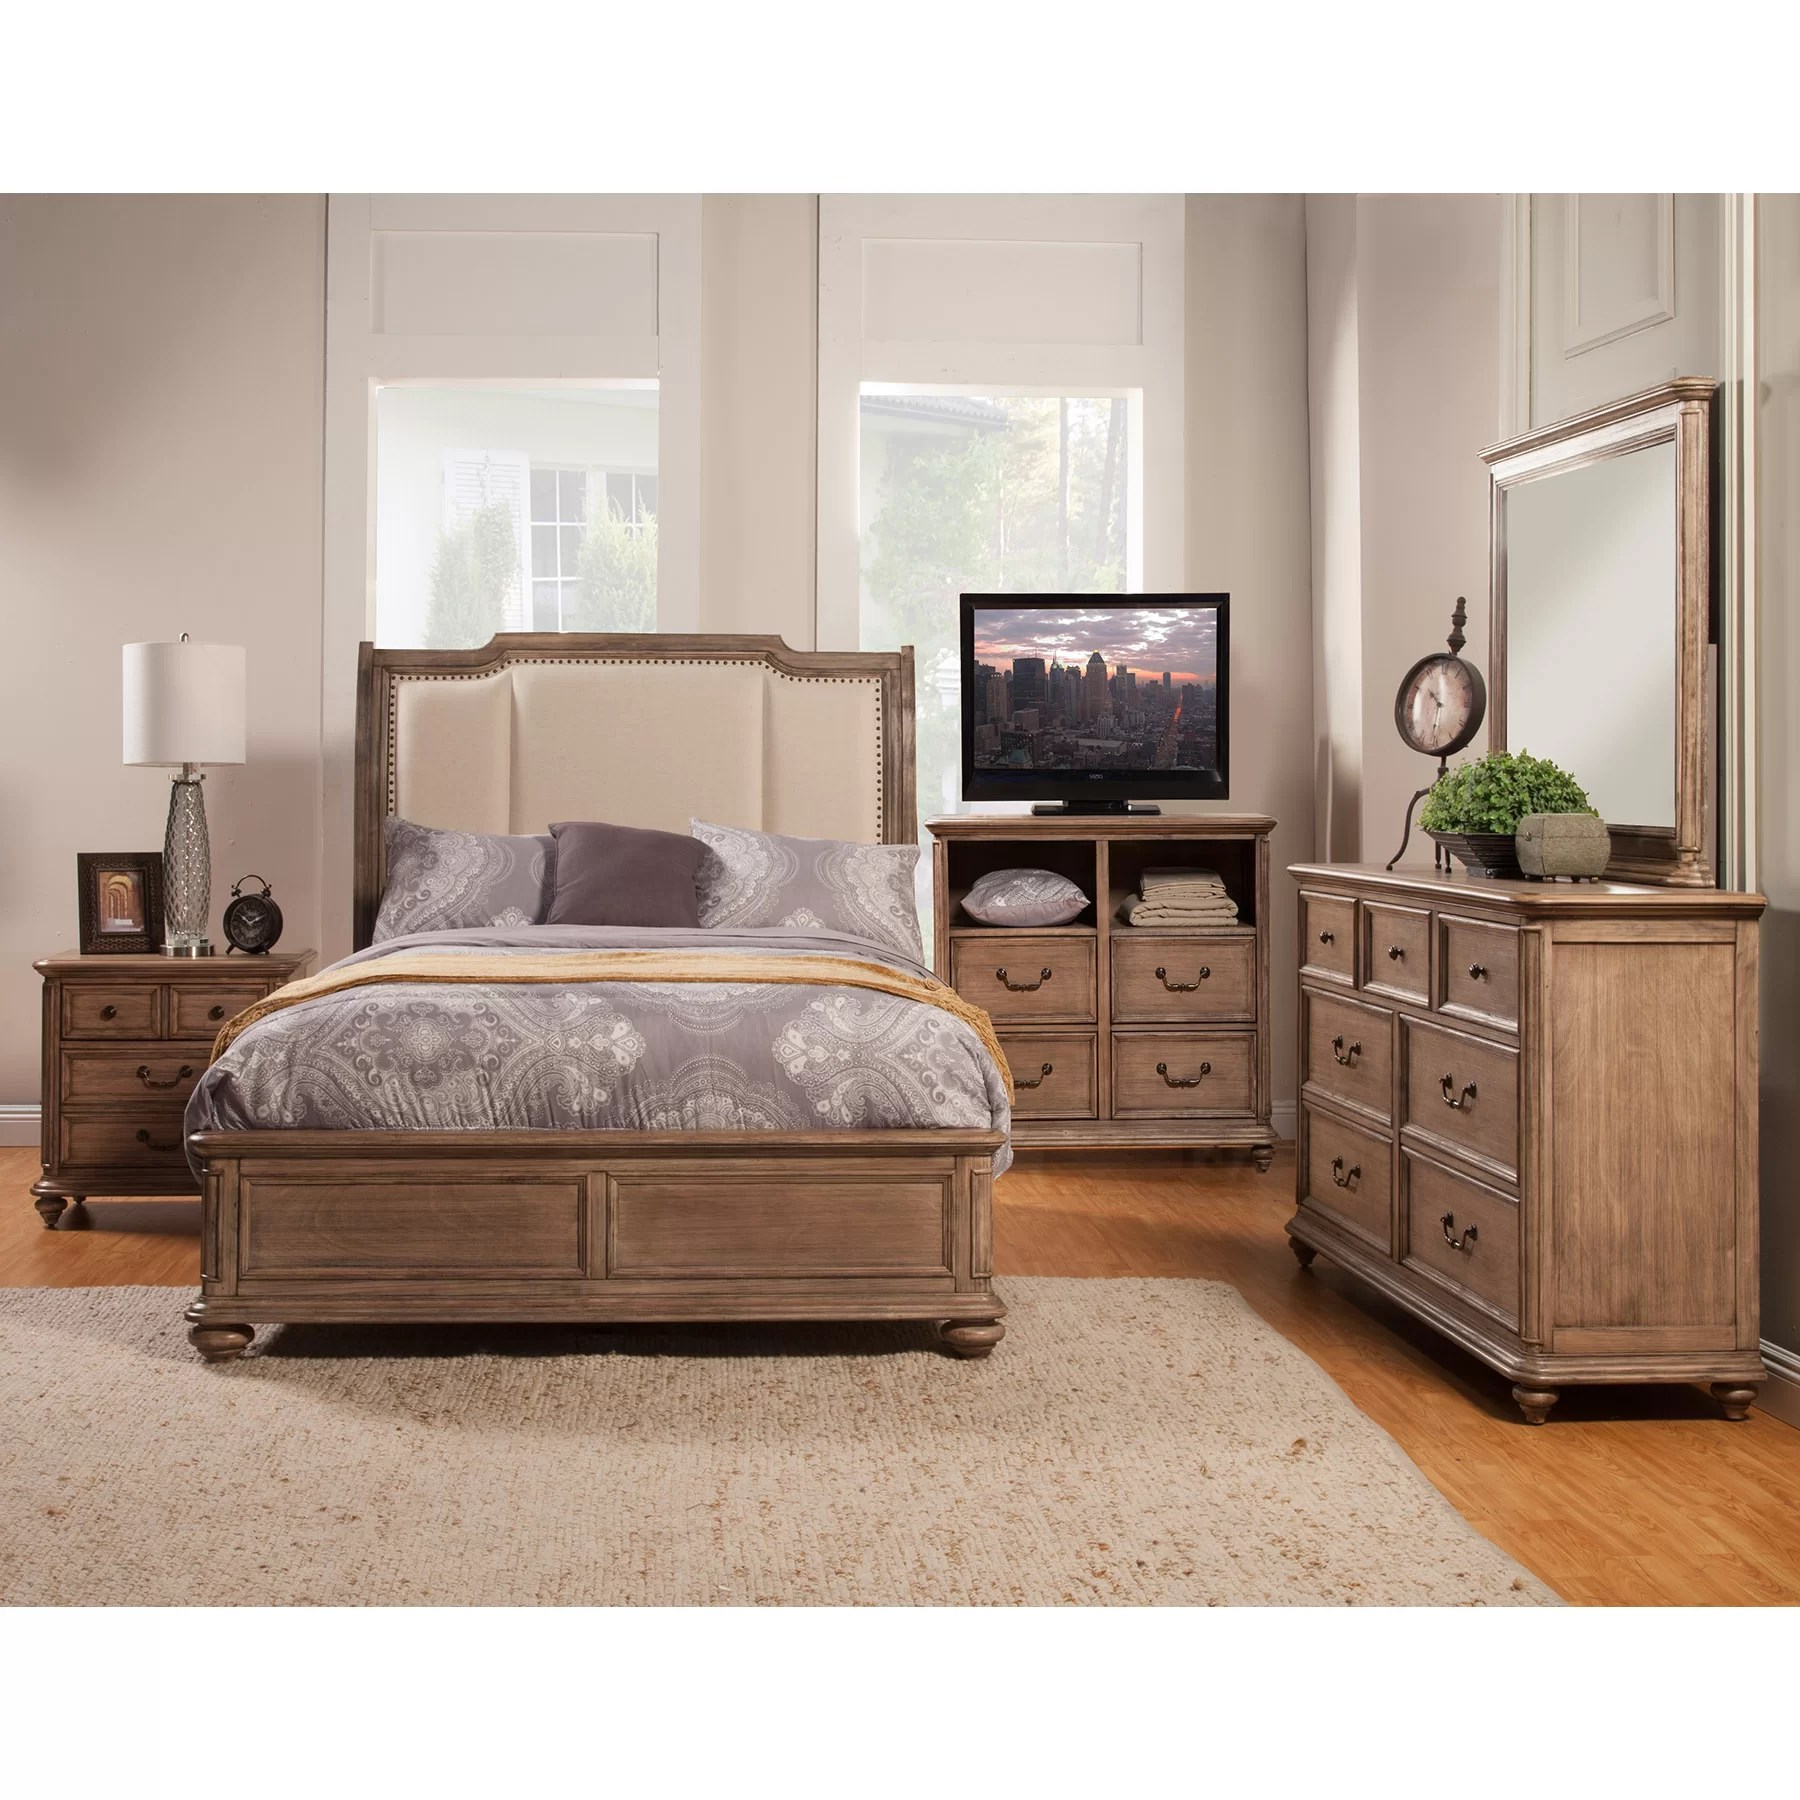 bedroom chair melbourne pottery barn kitchen table and chairs alpine furniture panel customizable set